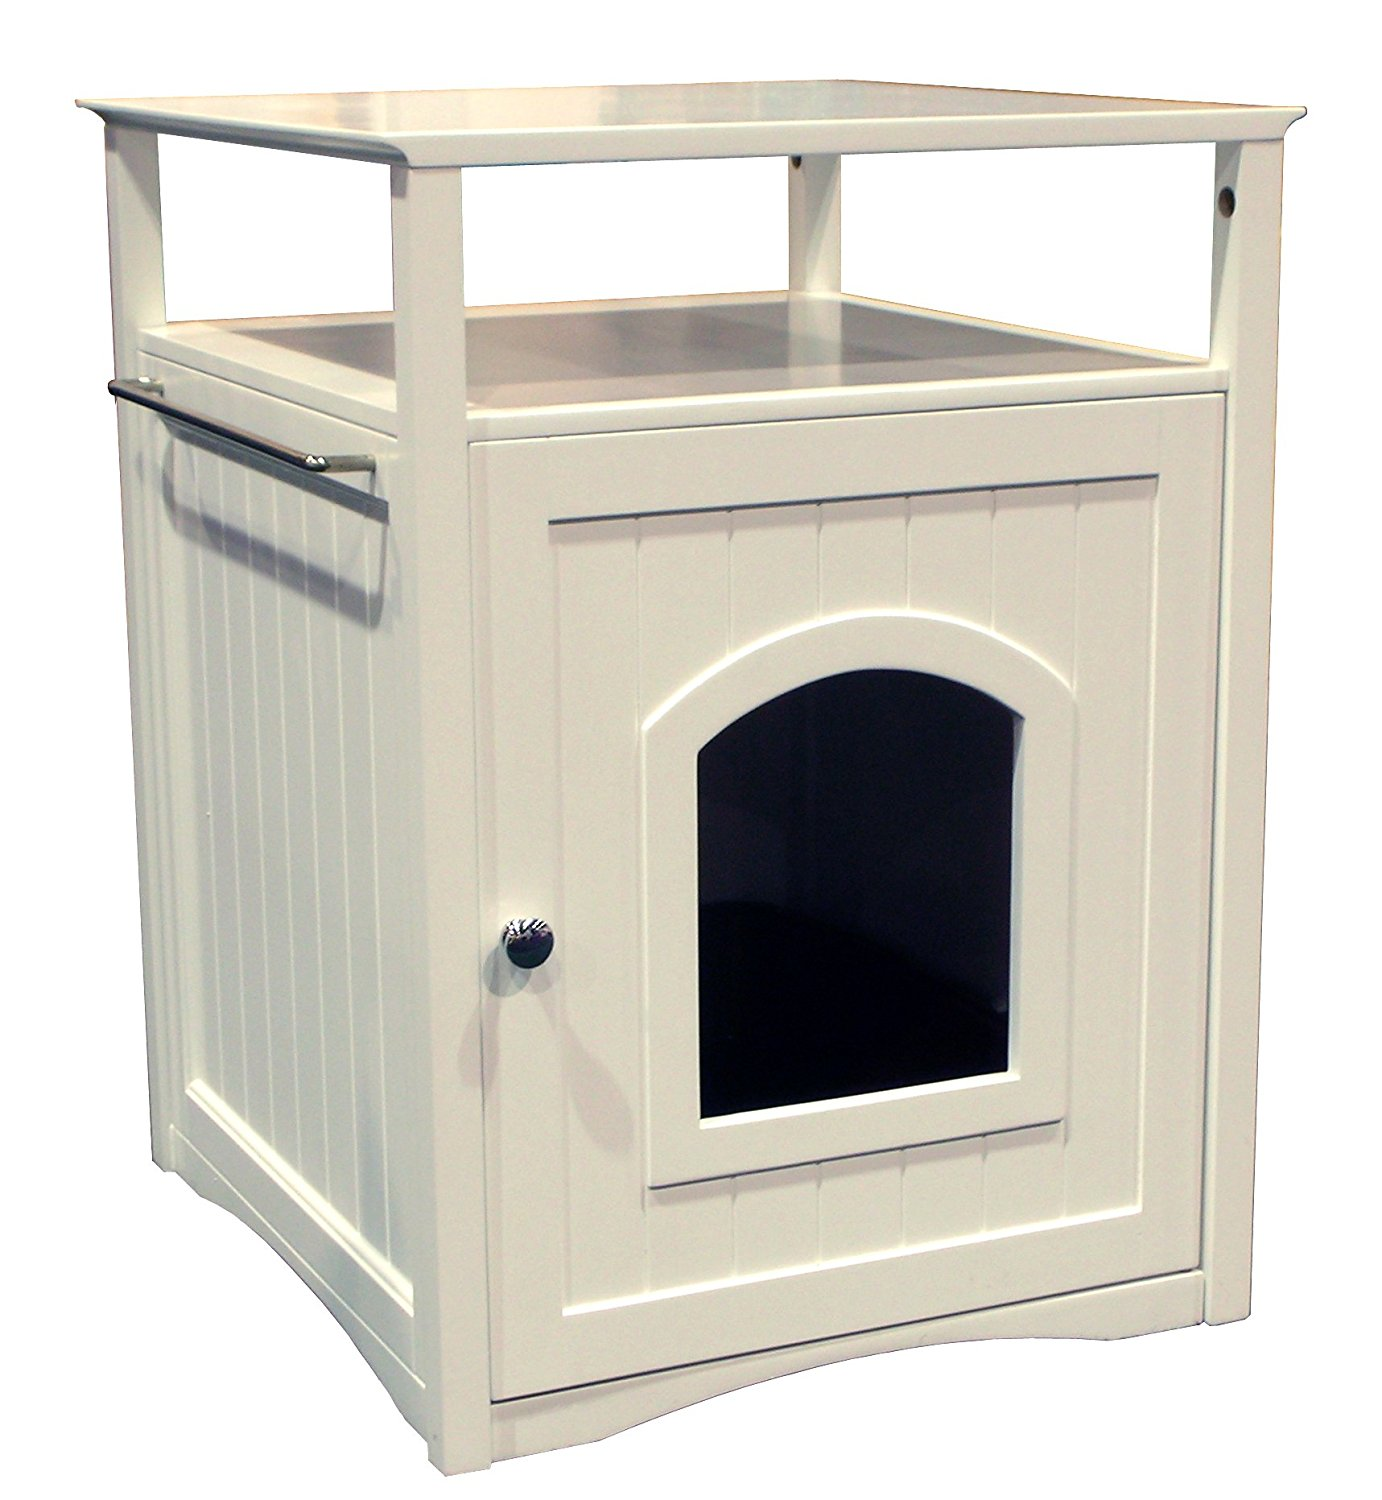 Hidden Cat Litter Box | Hidden Litter Box Furniture | Litter Box Table